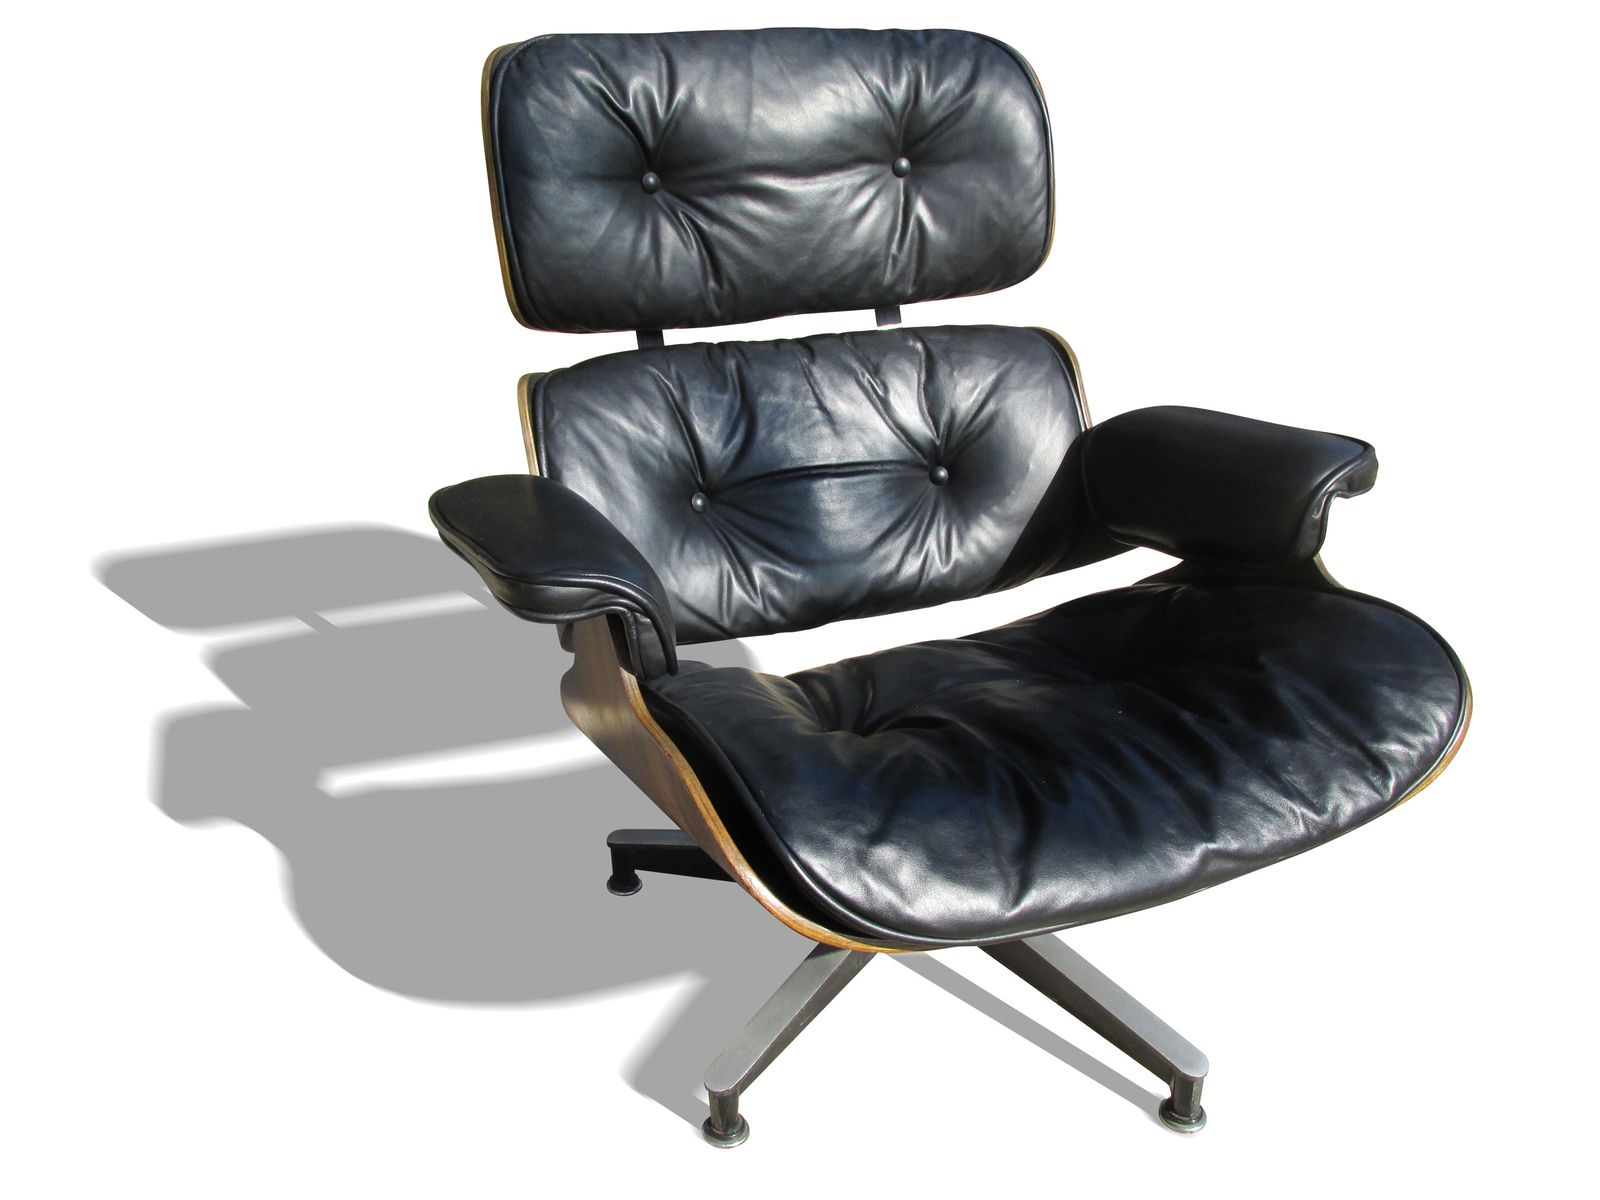 670 671 lounge chair and ottoman by charles and ray eames. Black Bedroom Furniture Sets. Home Design Ideas